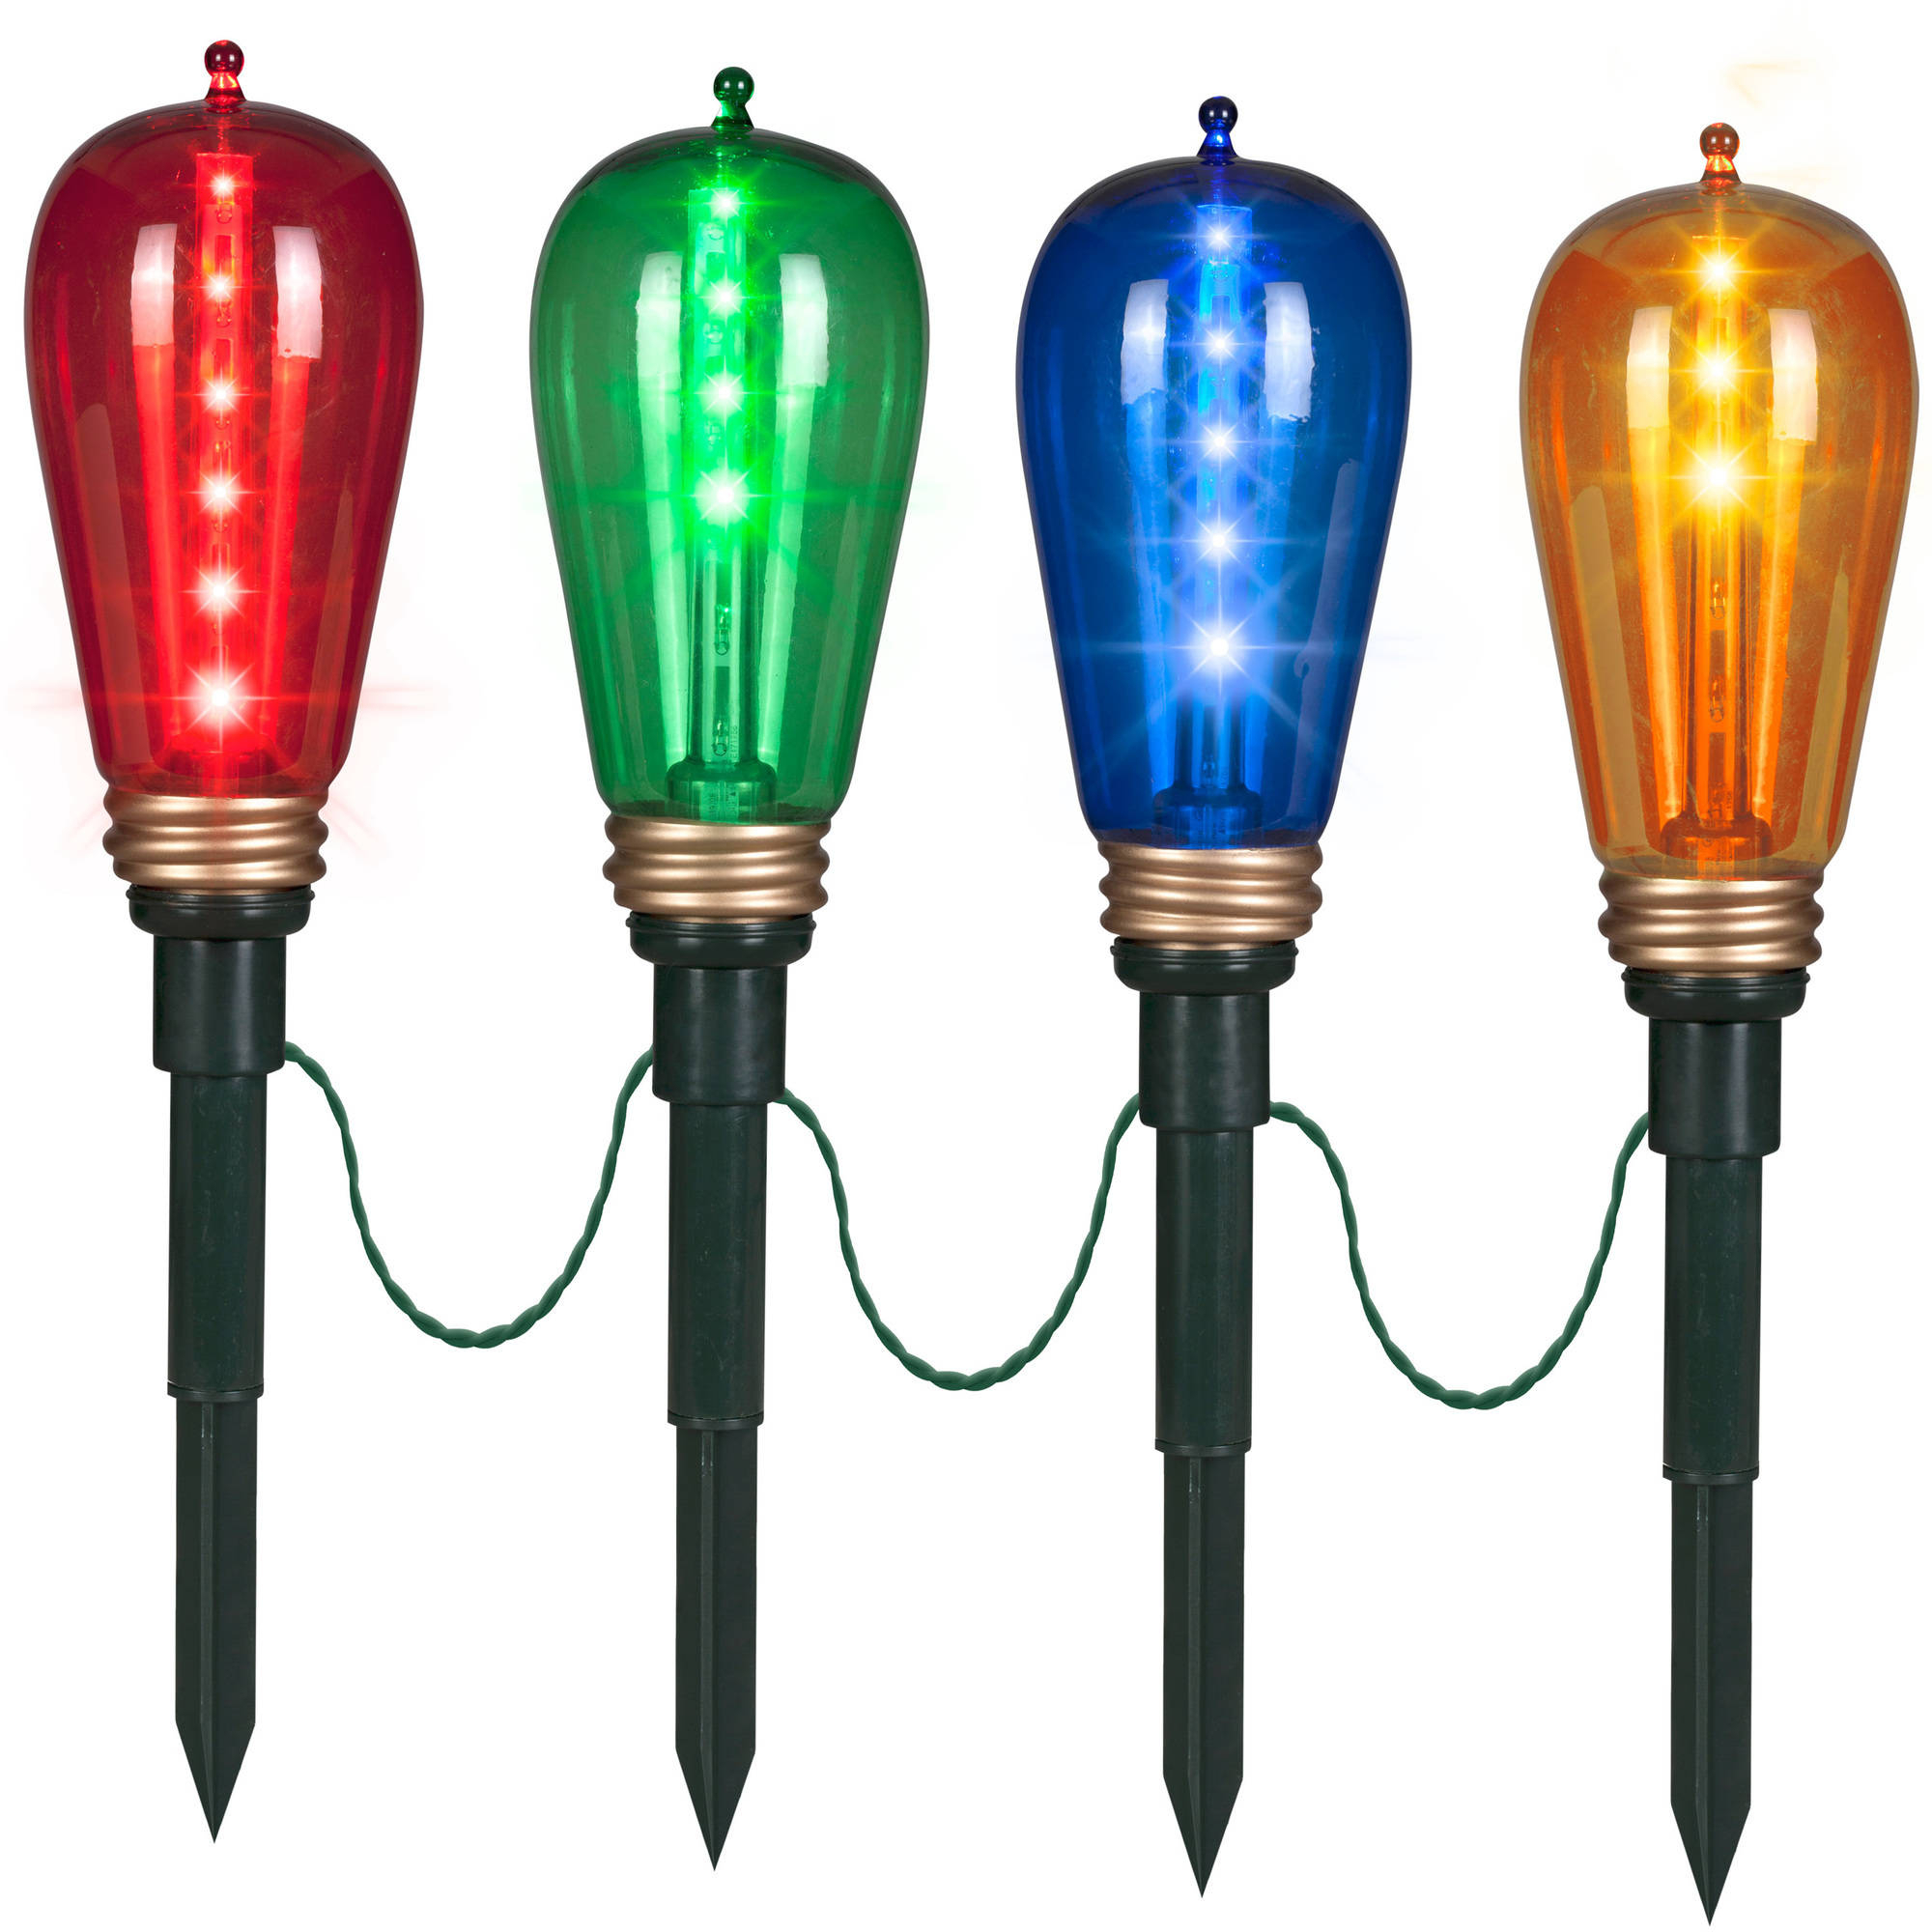 Christmas Light Bulb Styles Bulbs Ideas with measurements 2000 X 2000